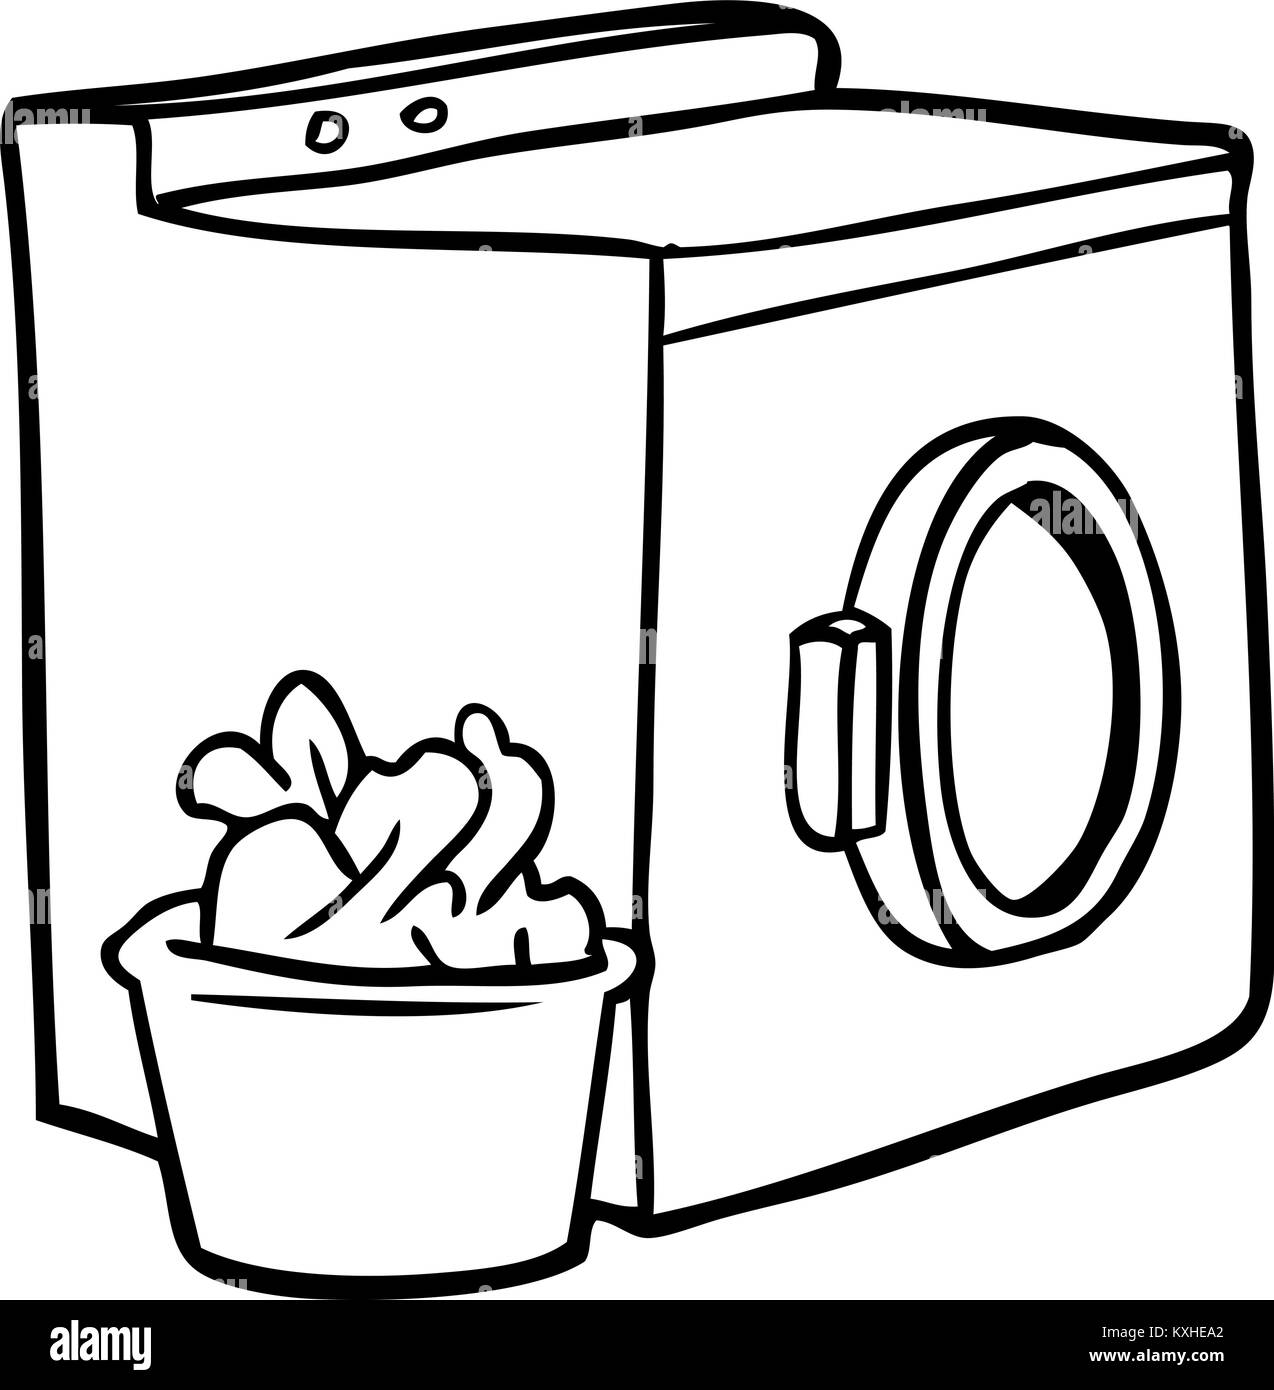 Washing Machine Drawing ~ Line drawing of a washing machine and laundry stock vector